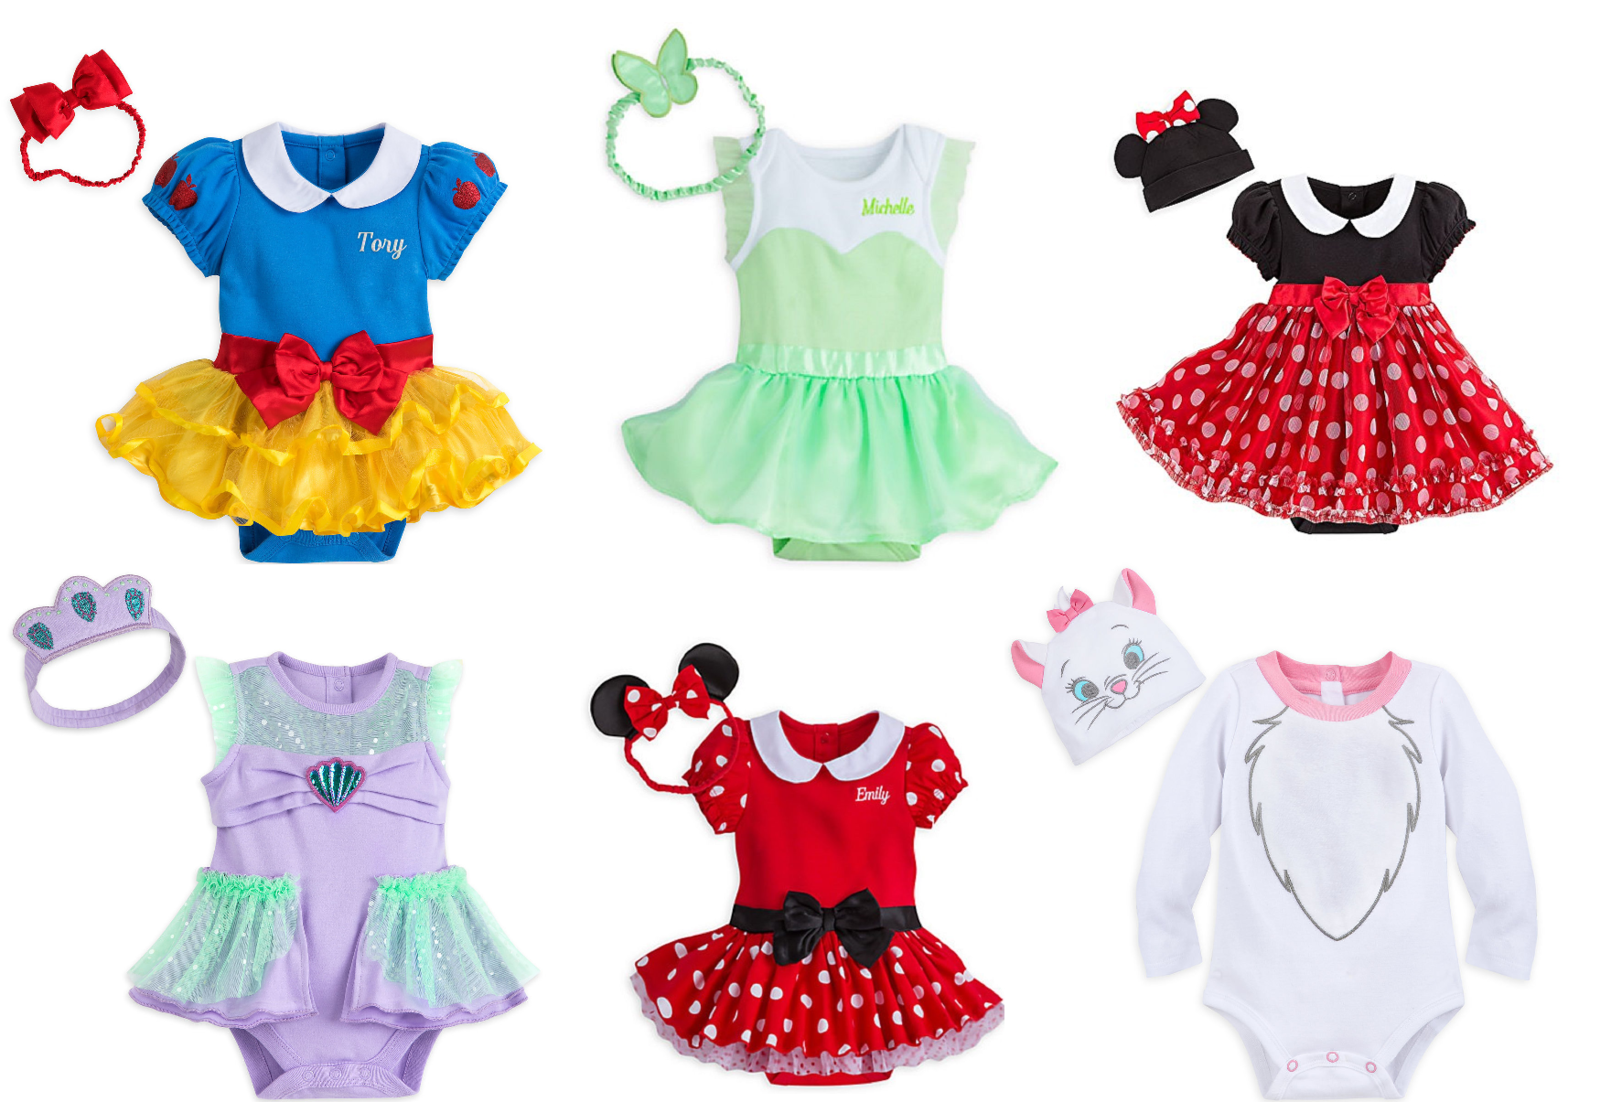 Disney Store Baby Bodysuit Costume Dress and 50 similar items